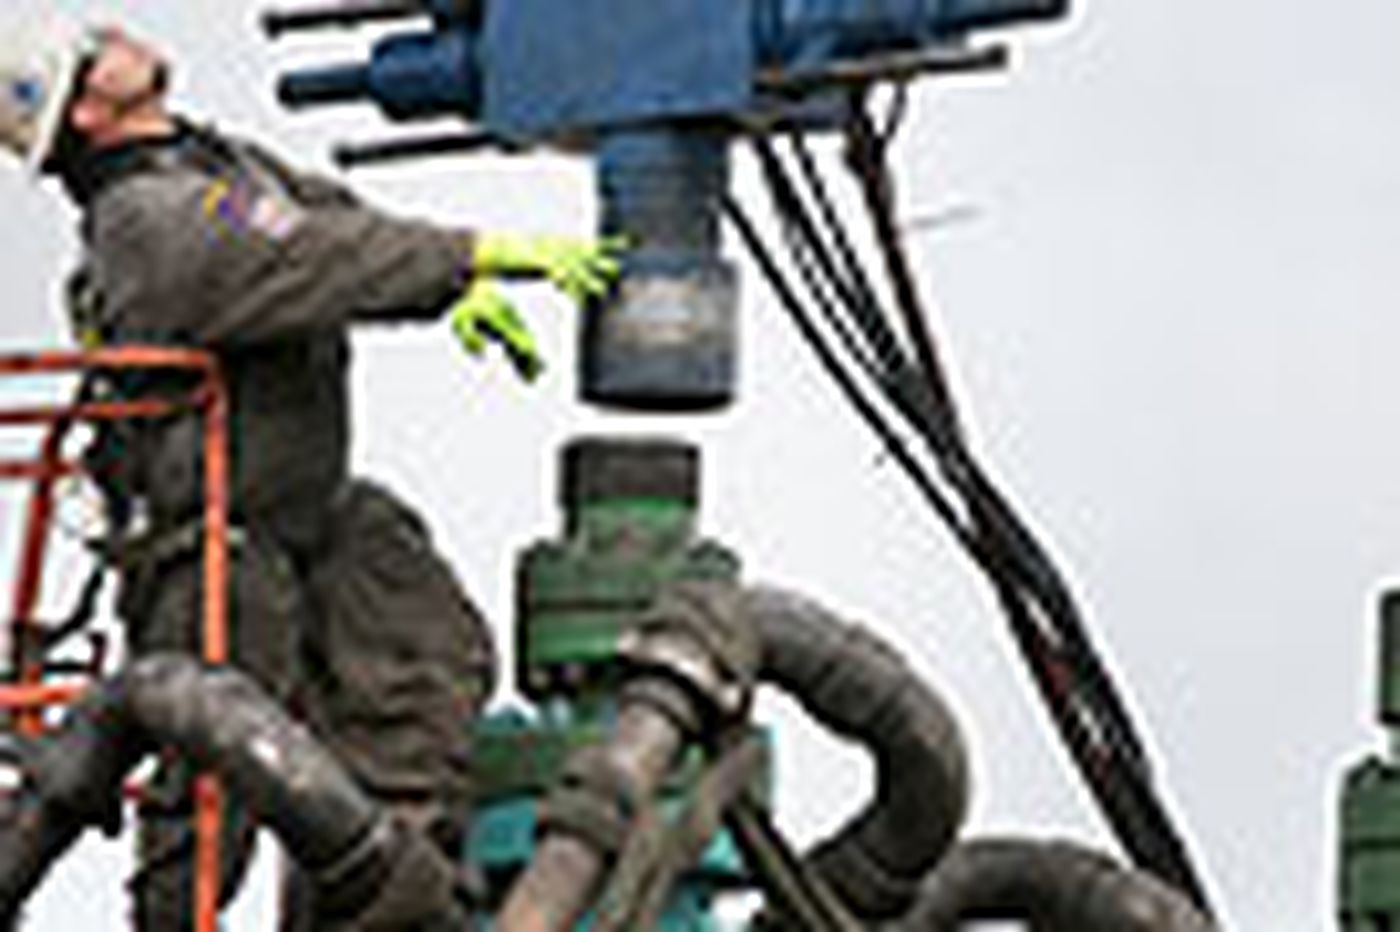 Industry study touts large economic impact of shale-gas drilling